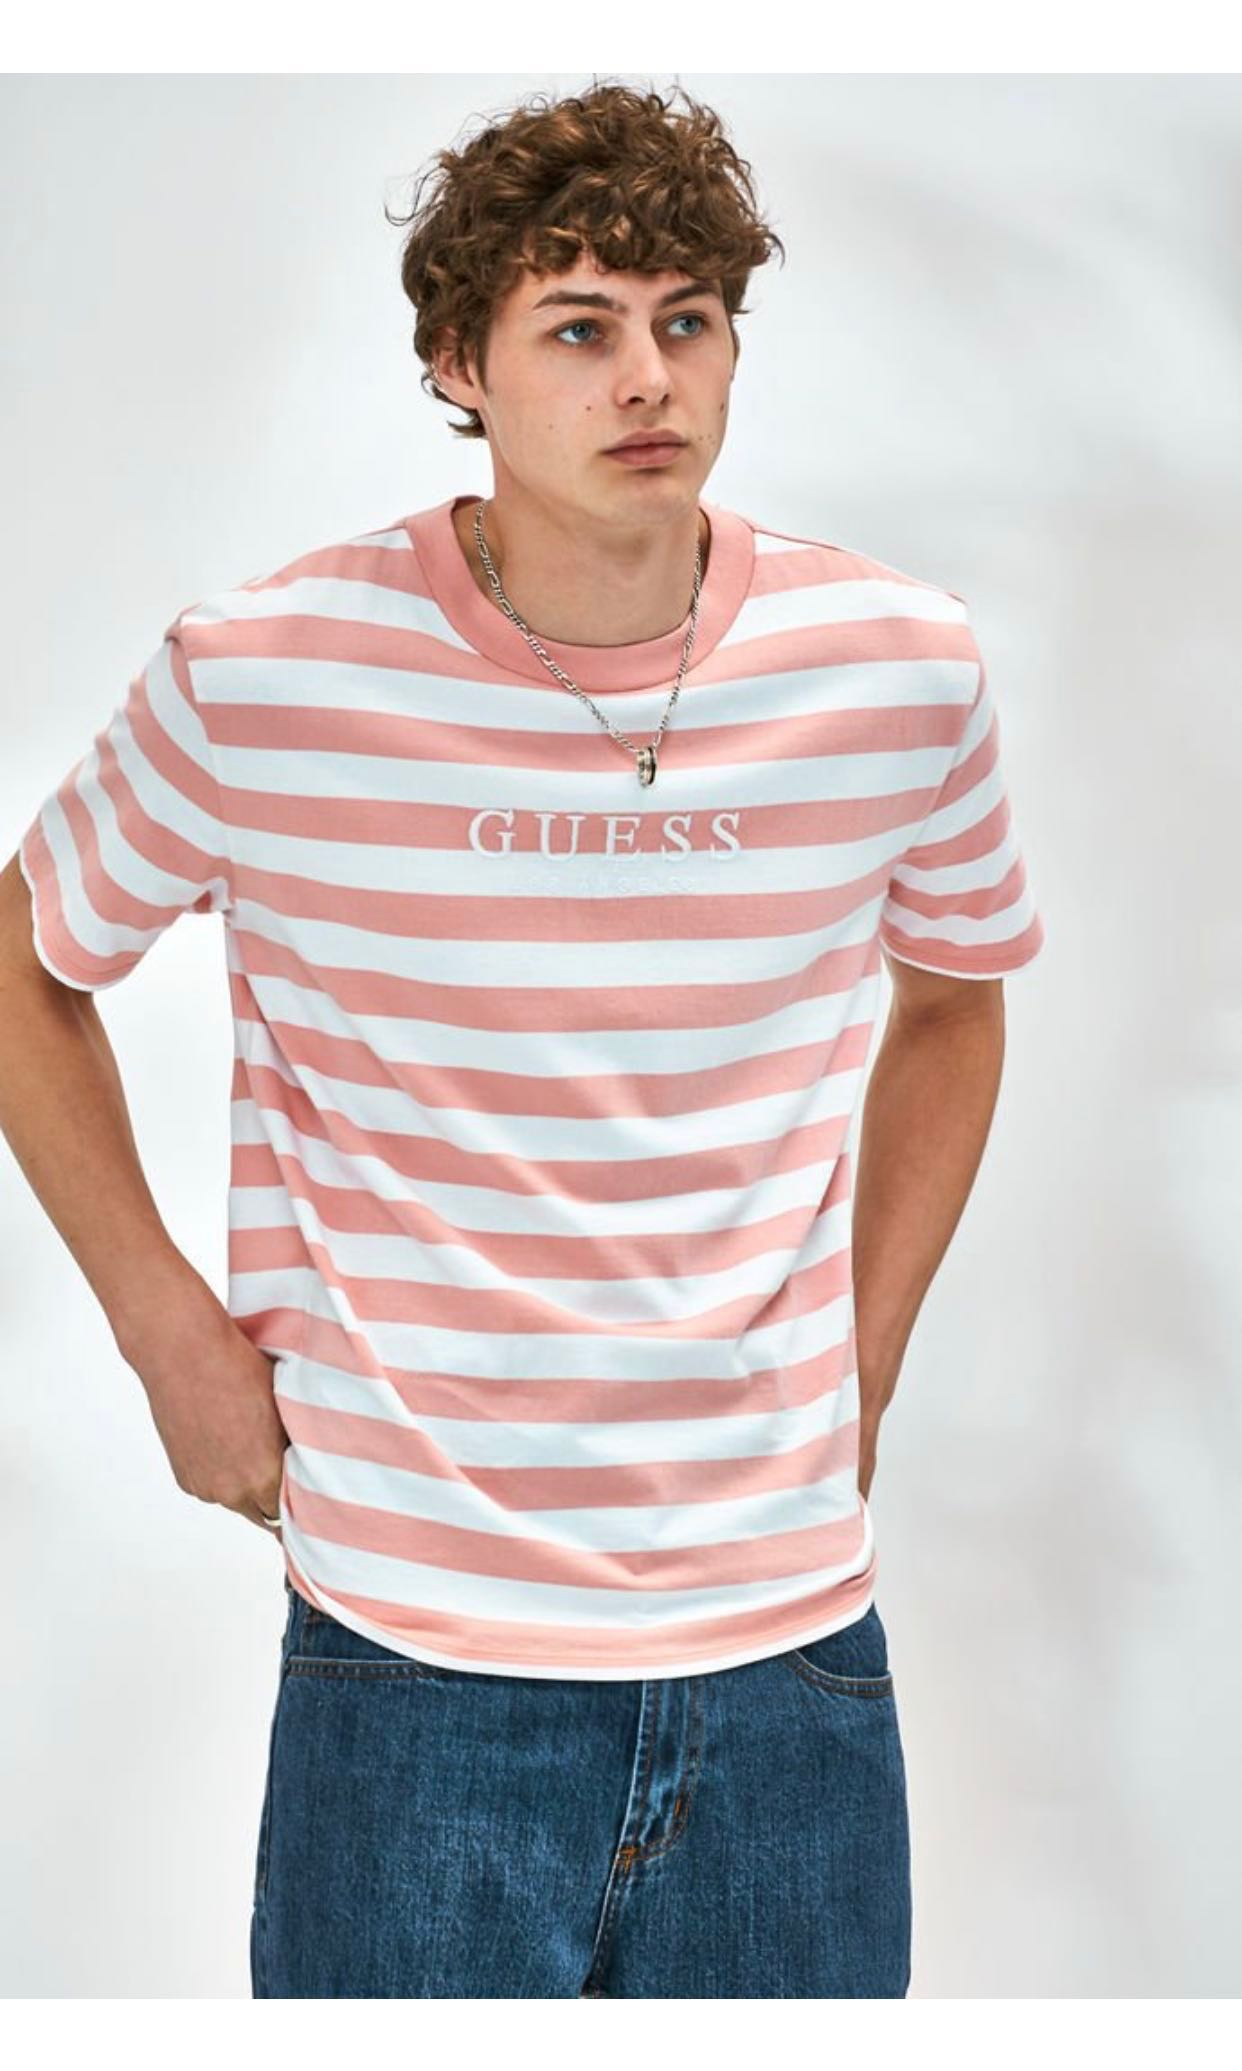 7b92fab120 Guess-Palm Striped T-Shirt, Men's Fashion, Clothes, Tops on Carousell